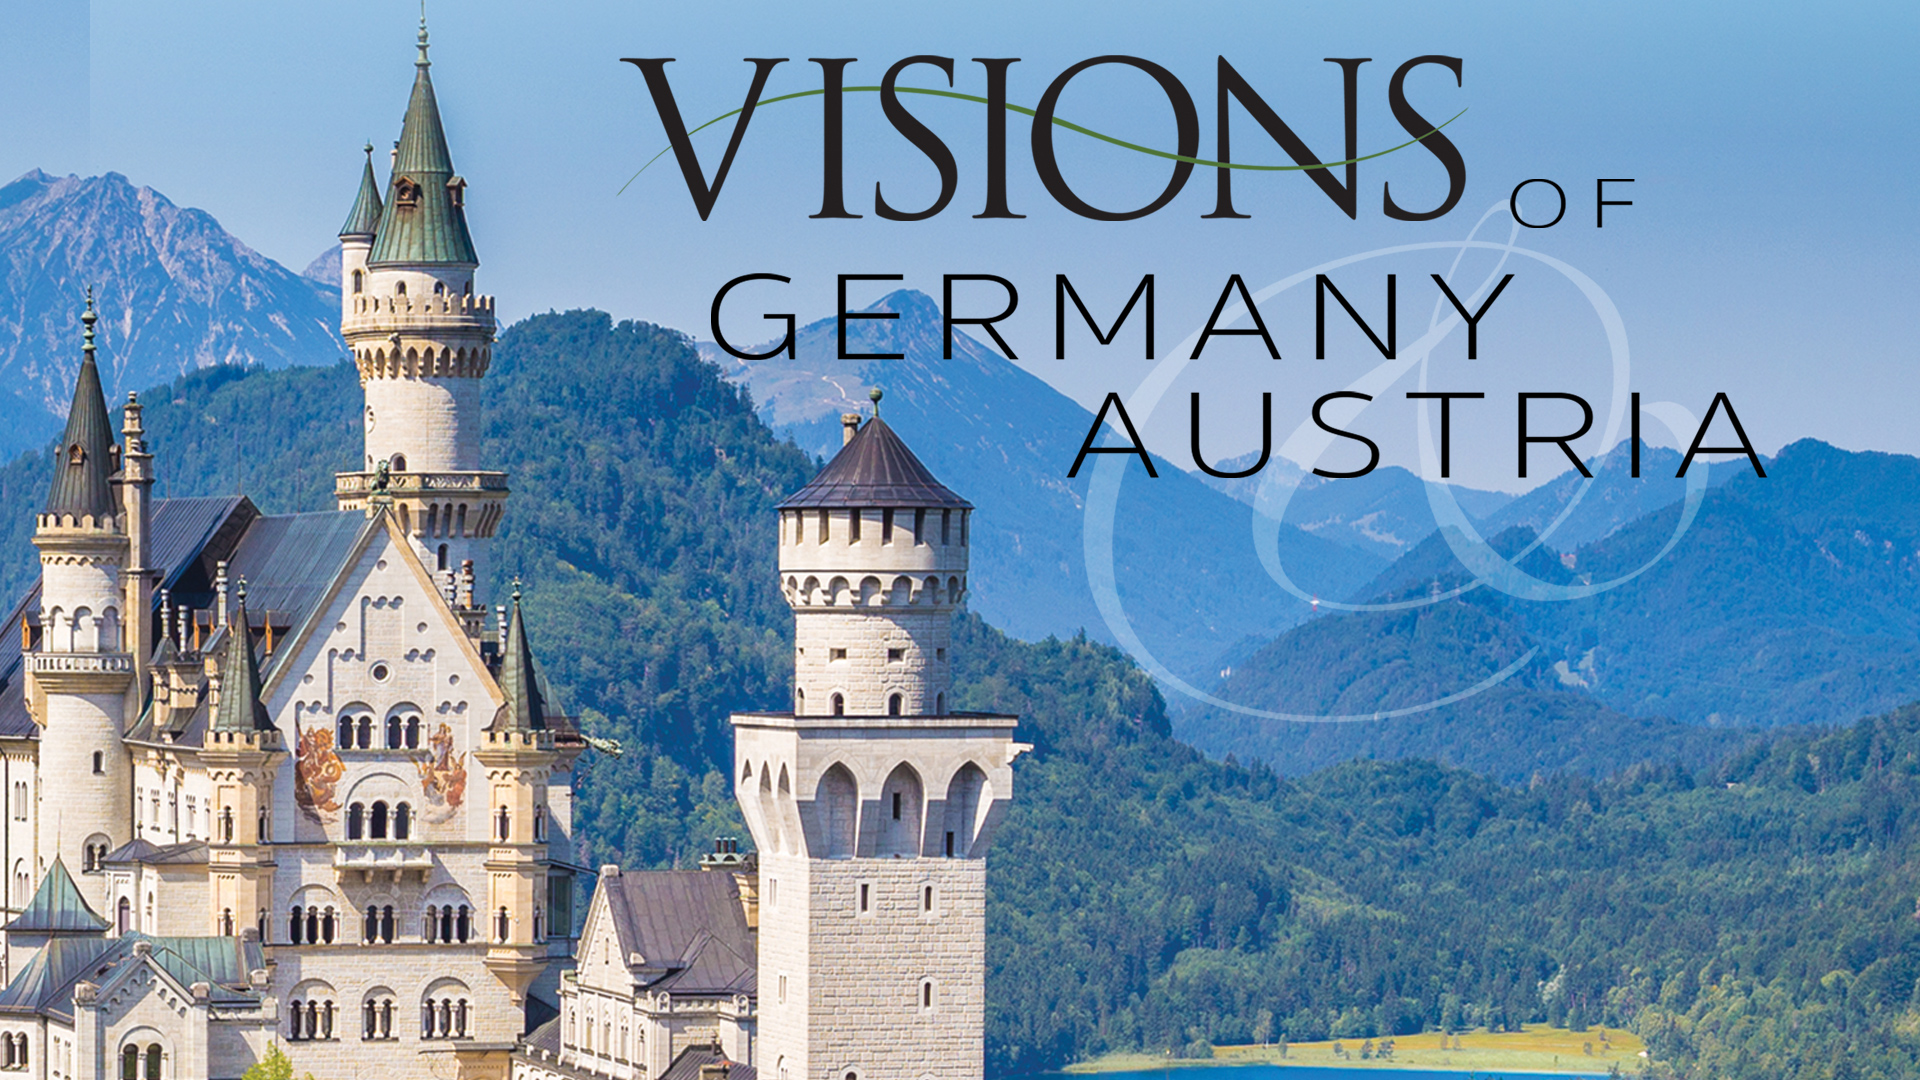 Visions of Germany and Austria Season 1